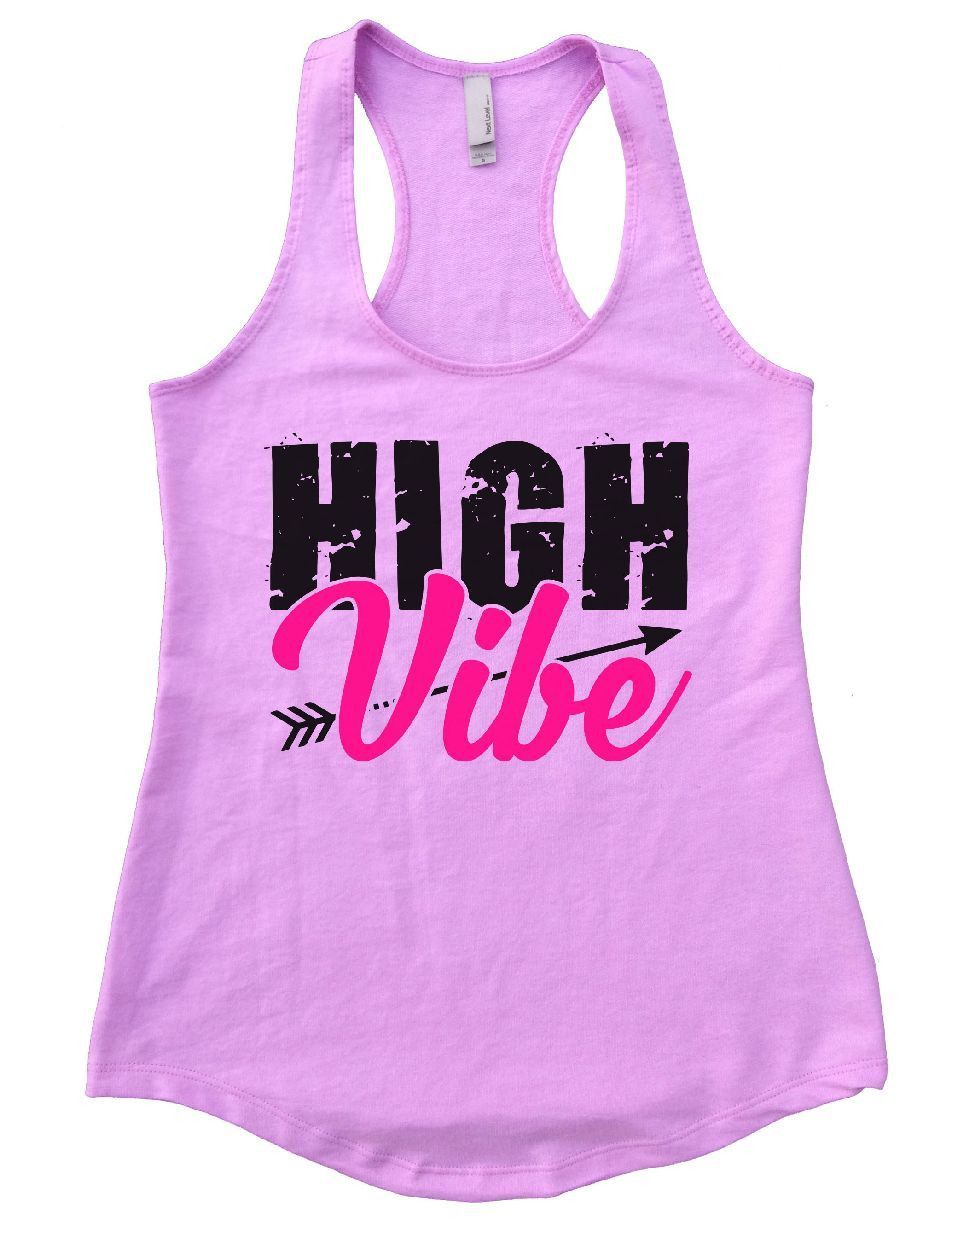 HIGH Vibe Womens Workout Tank Top